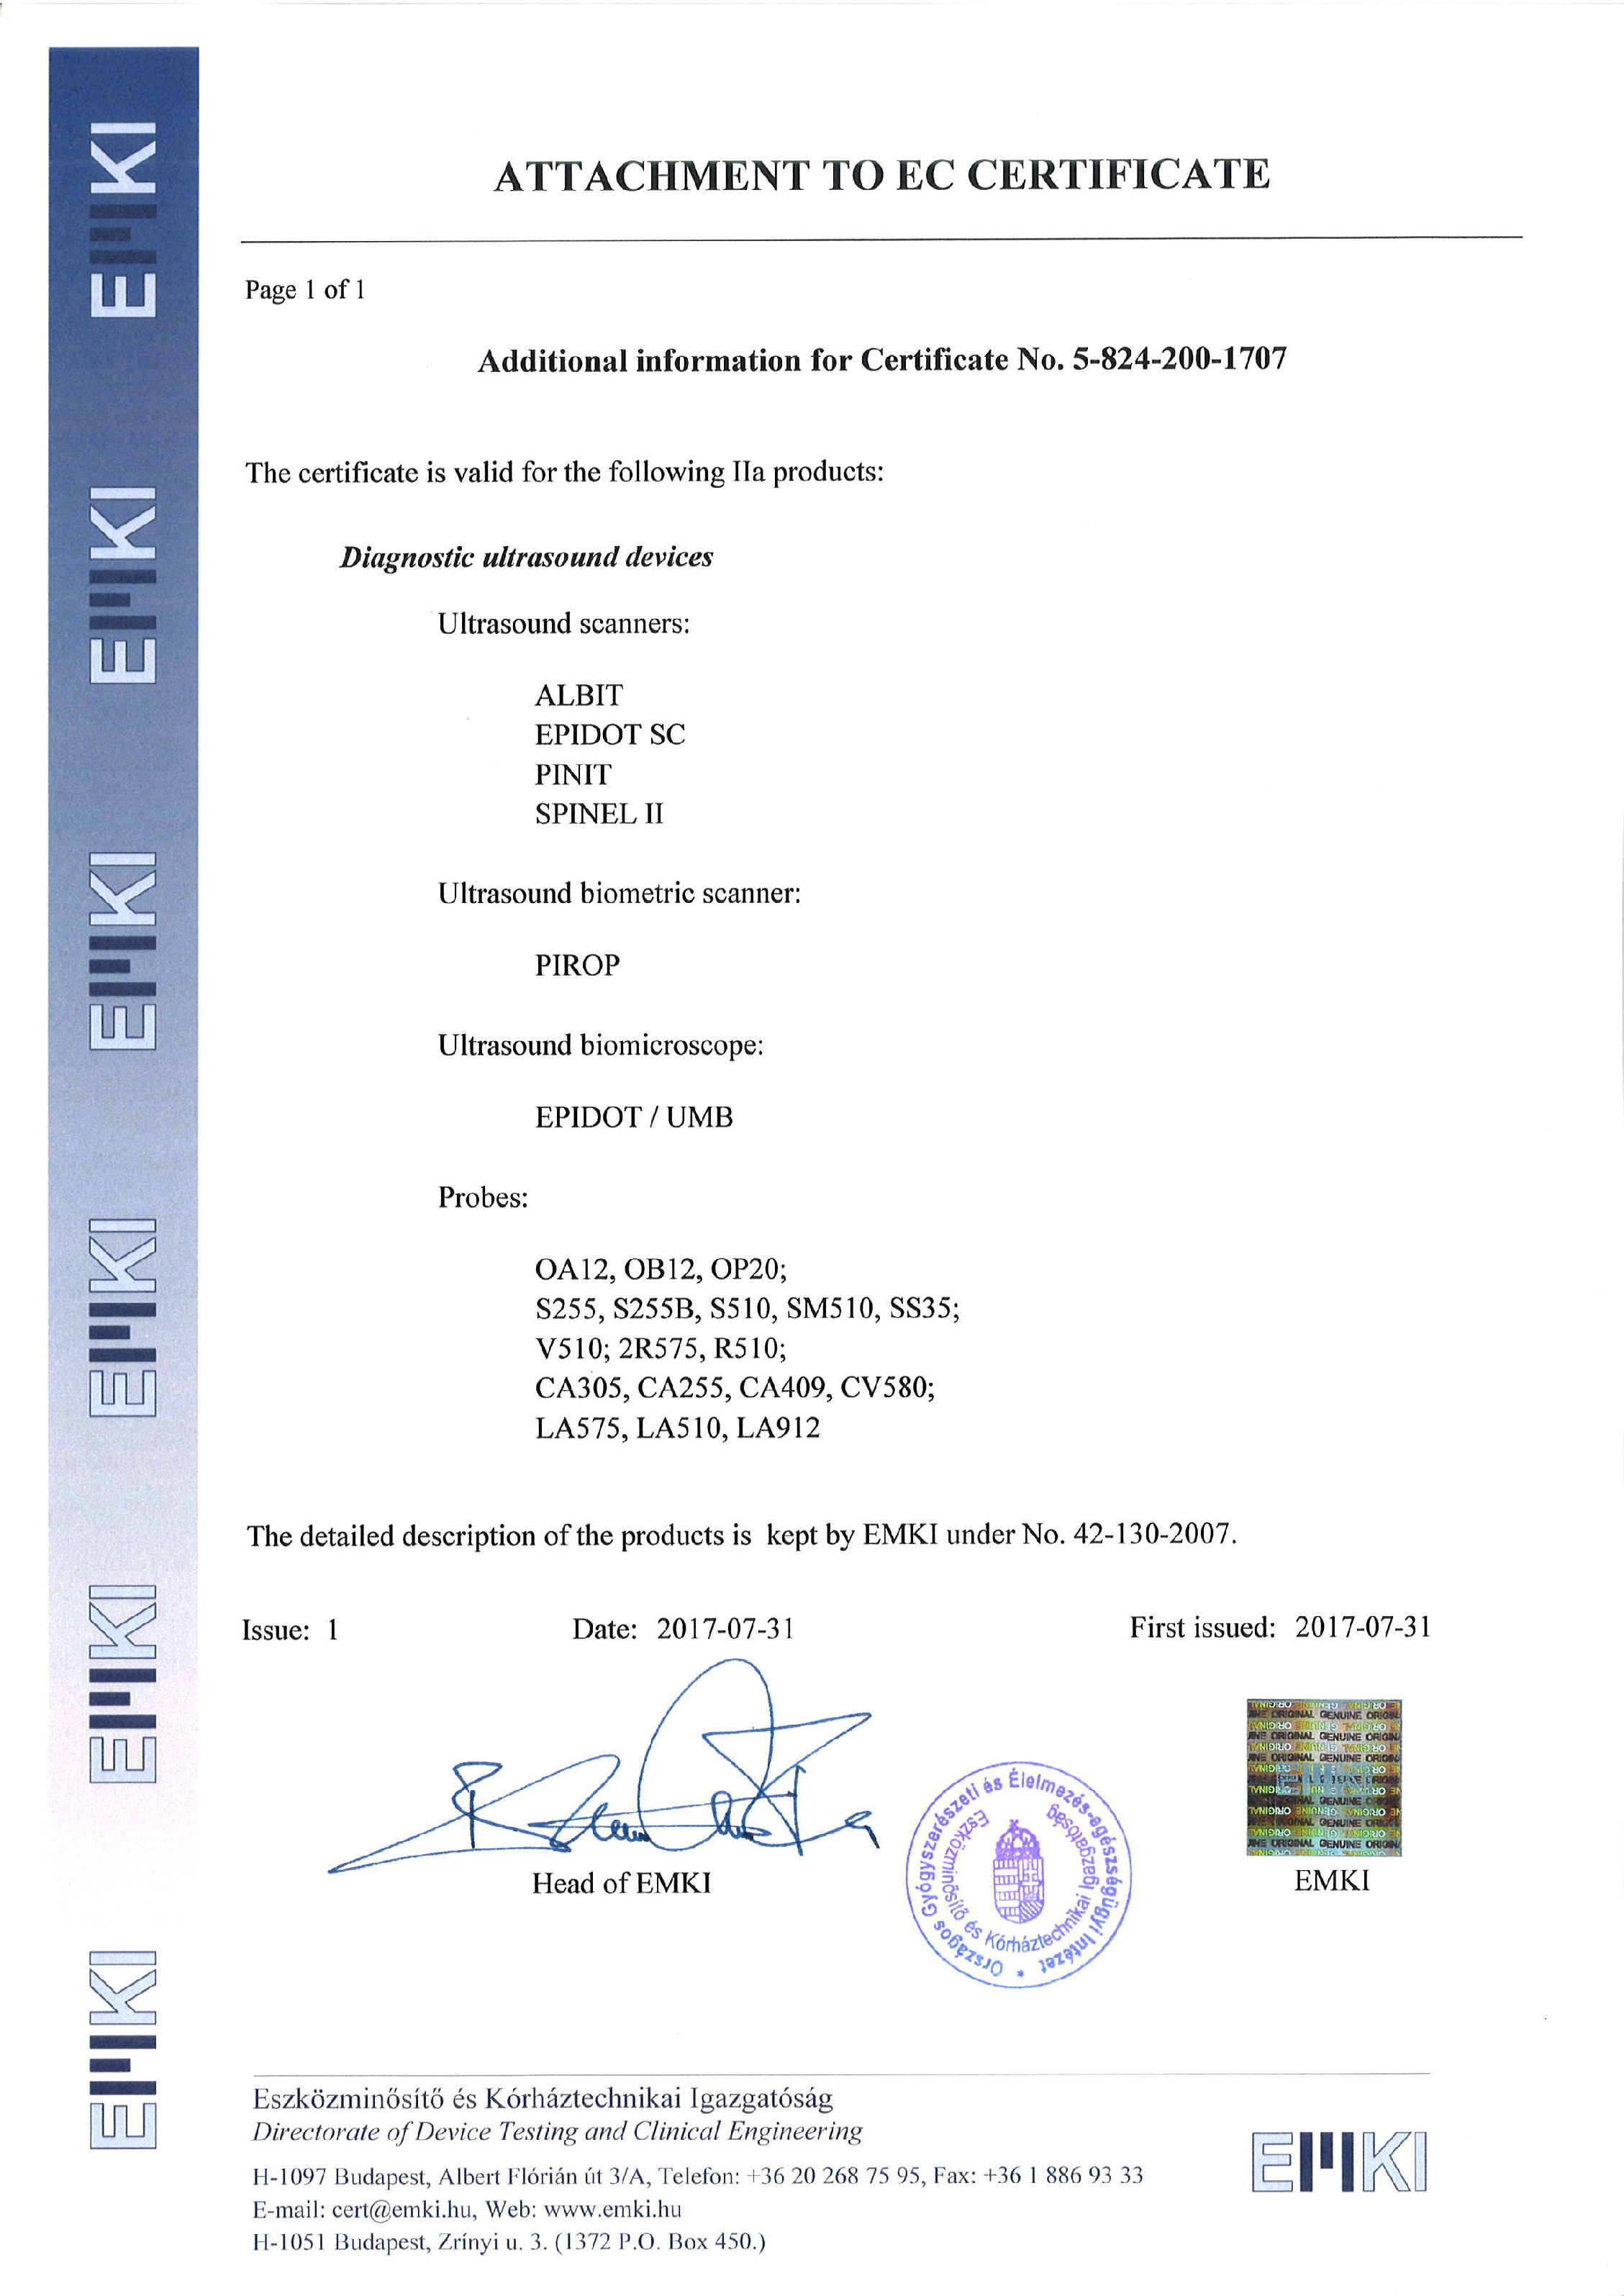 Attachment to CE Certificate